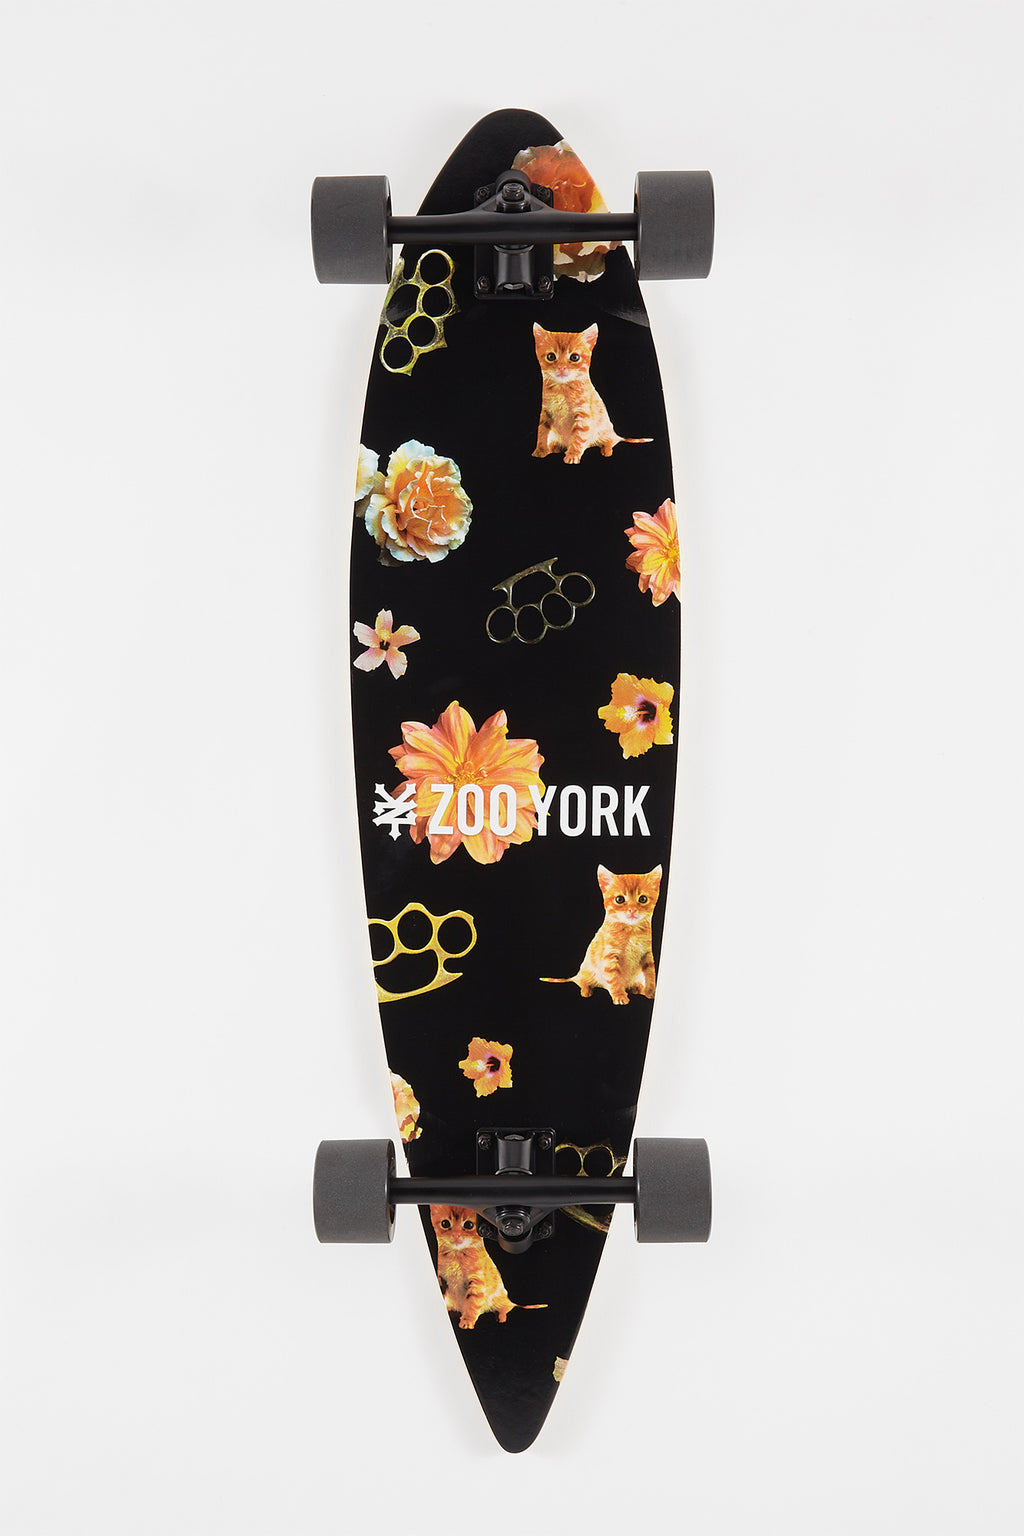 Zoo York Cat Longboard 38""